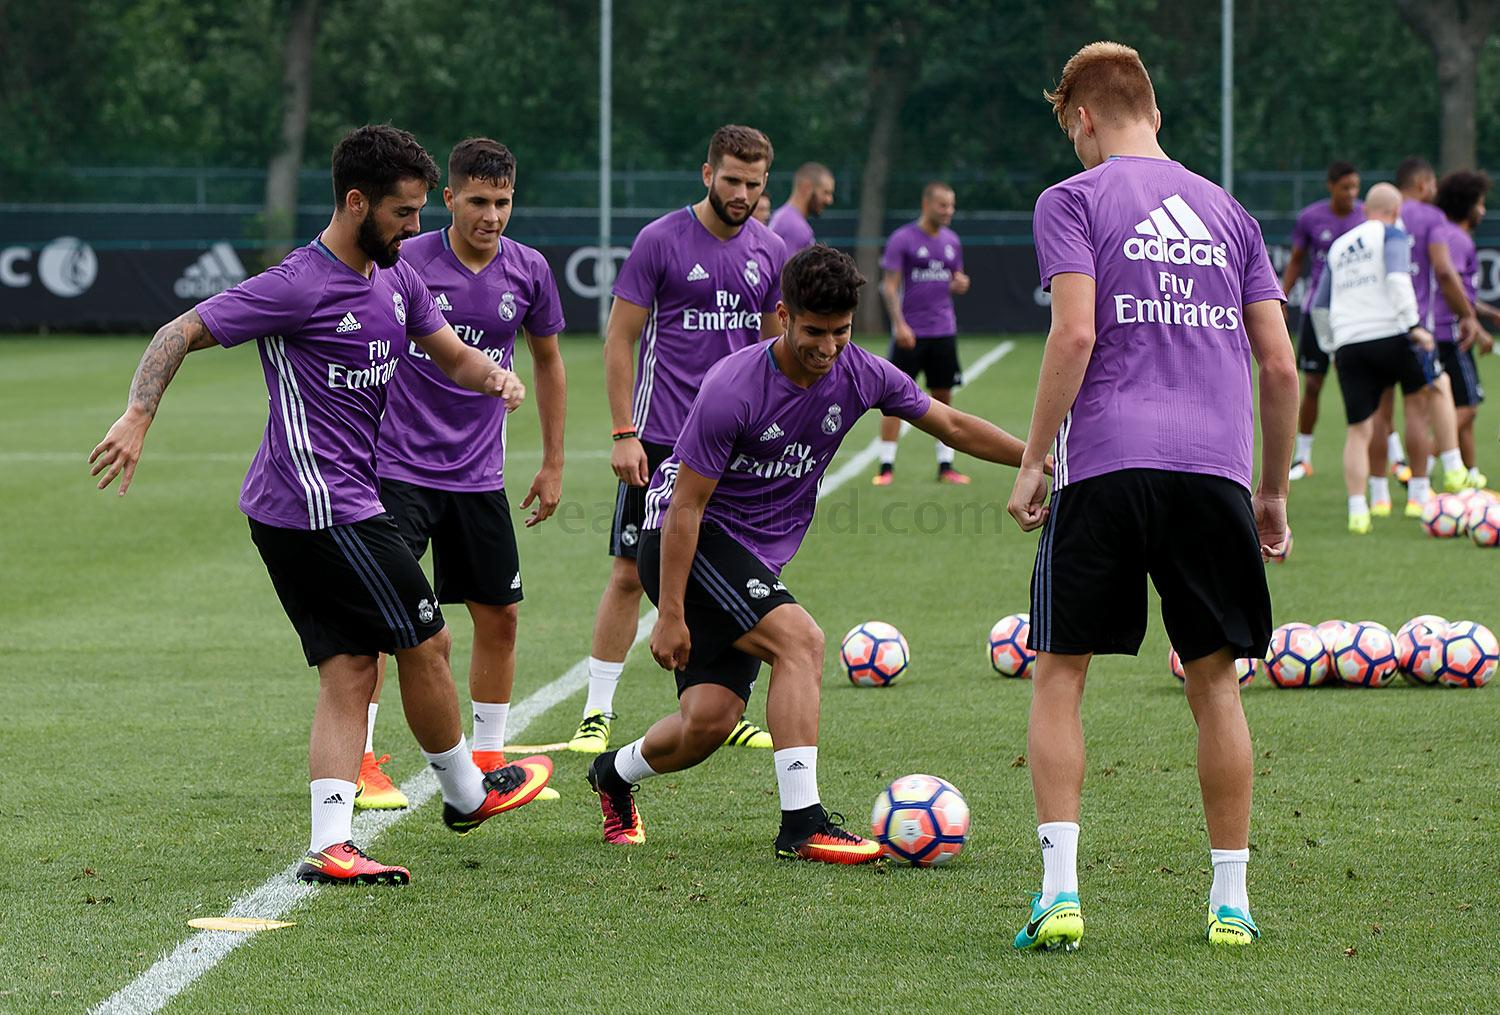 Real Madrid - Entrenamiento del Real Madrid en Montreal - 18-07-2016